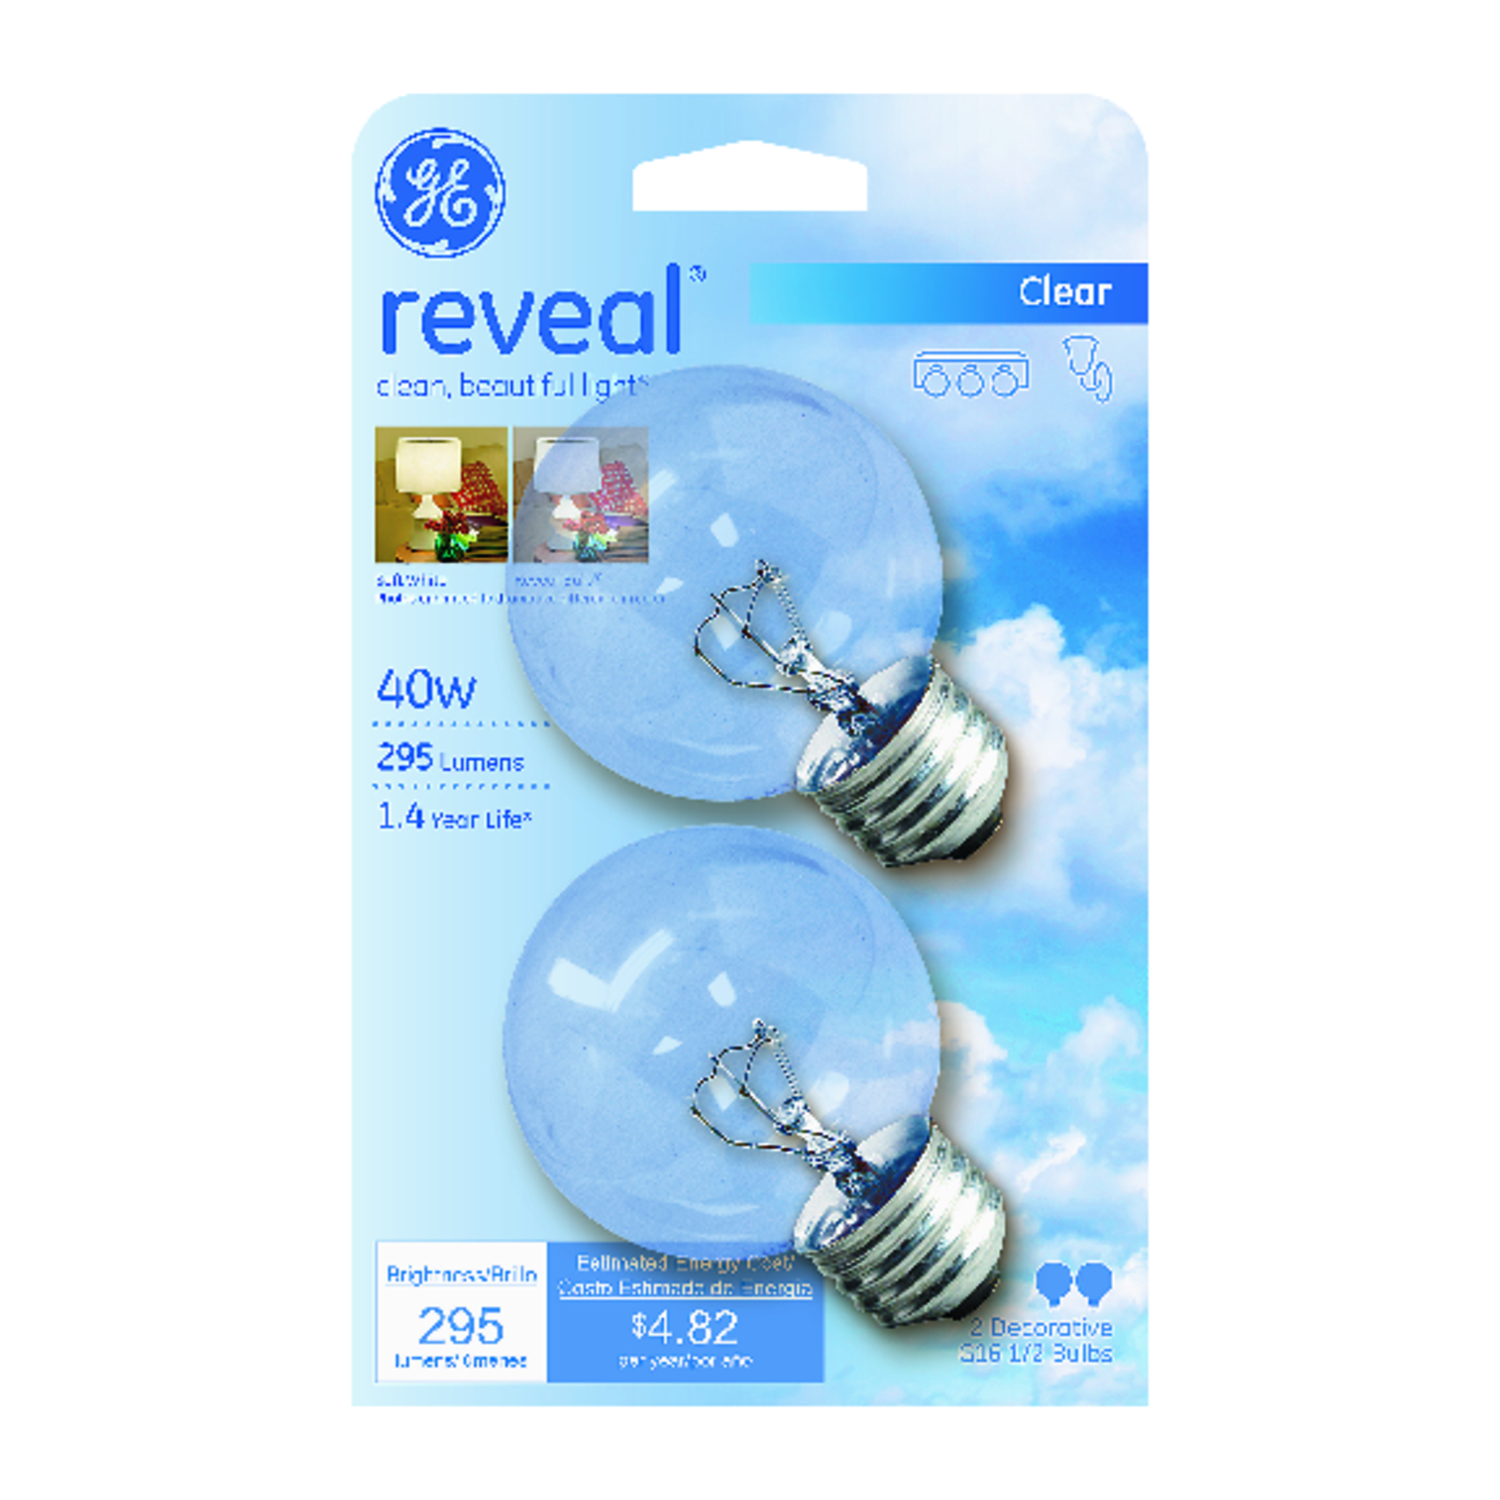 GE Lighting  Reveal  40 watts G16.5  Incandescent Light Bulb  295 lumens White (Clear)  2 pk Globe